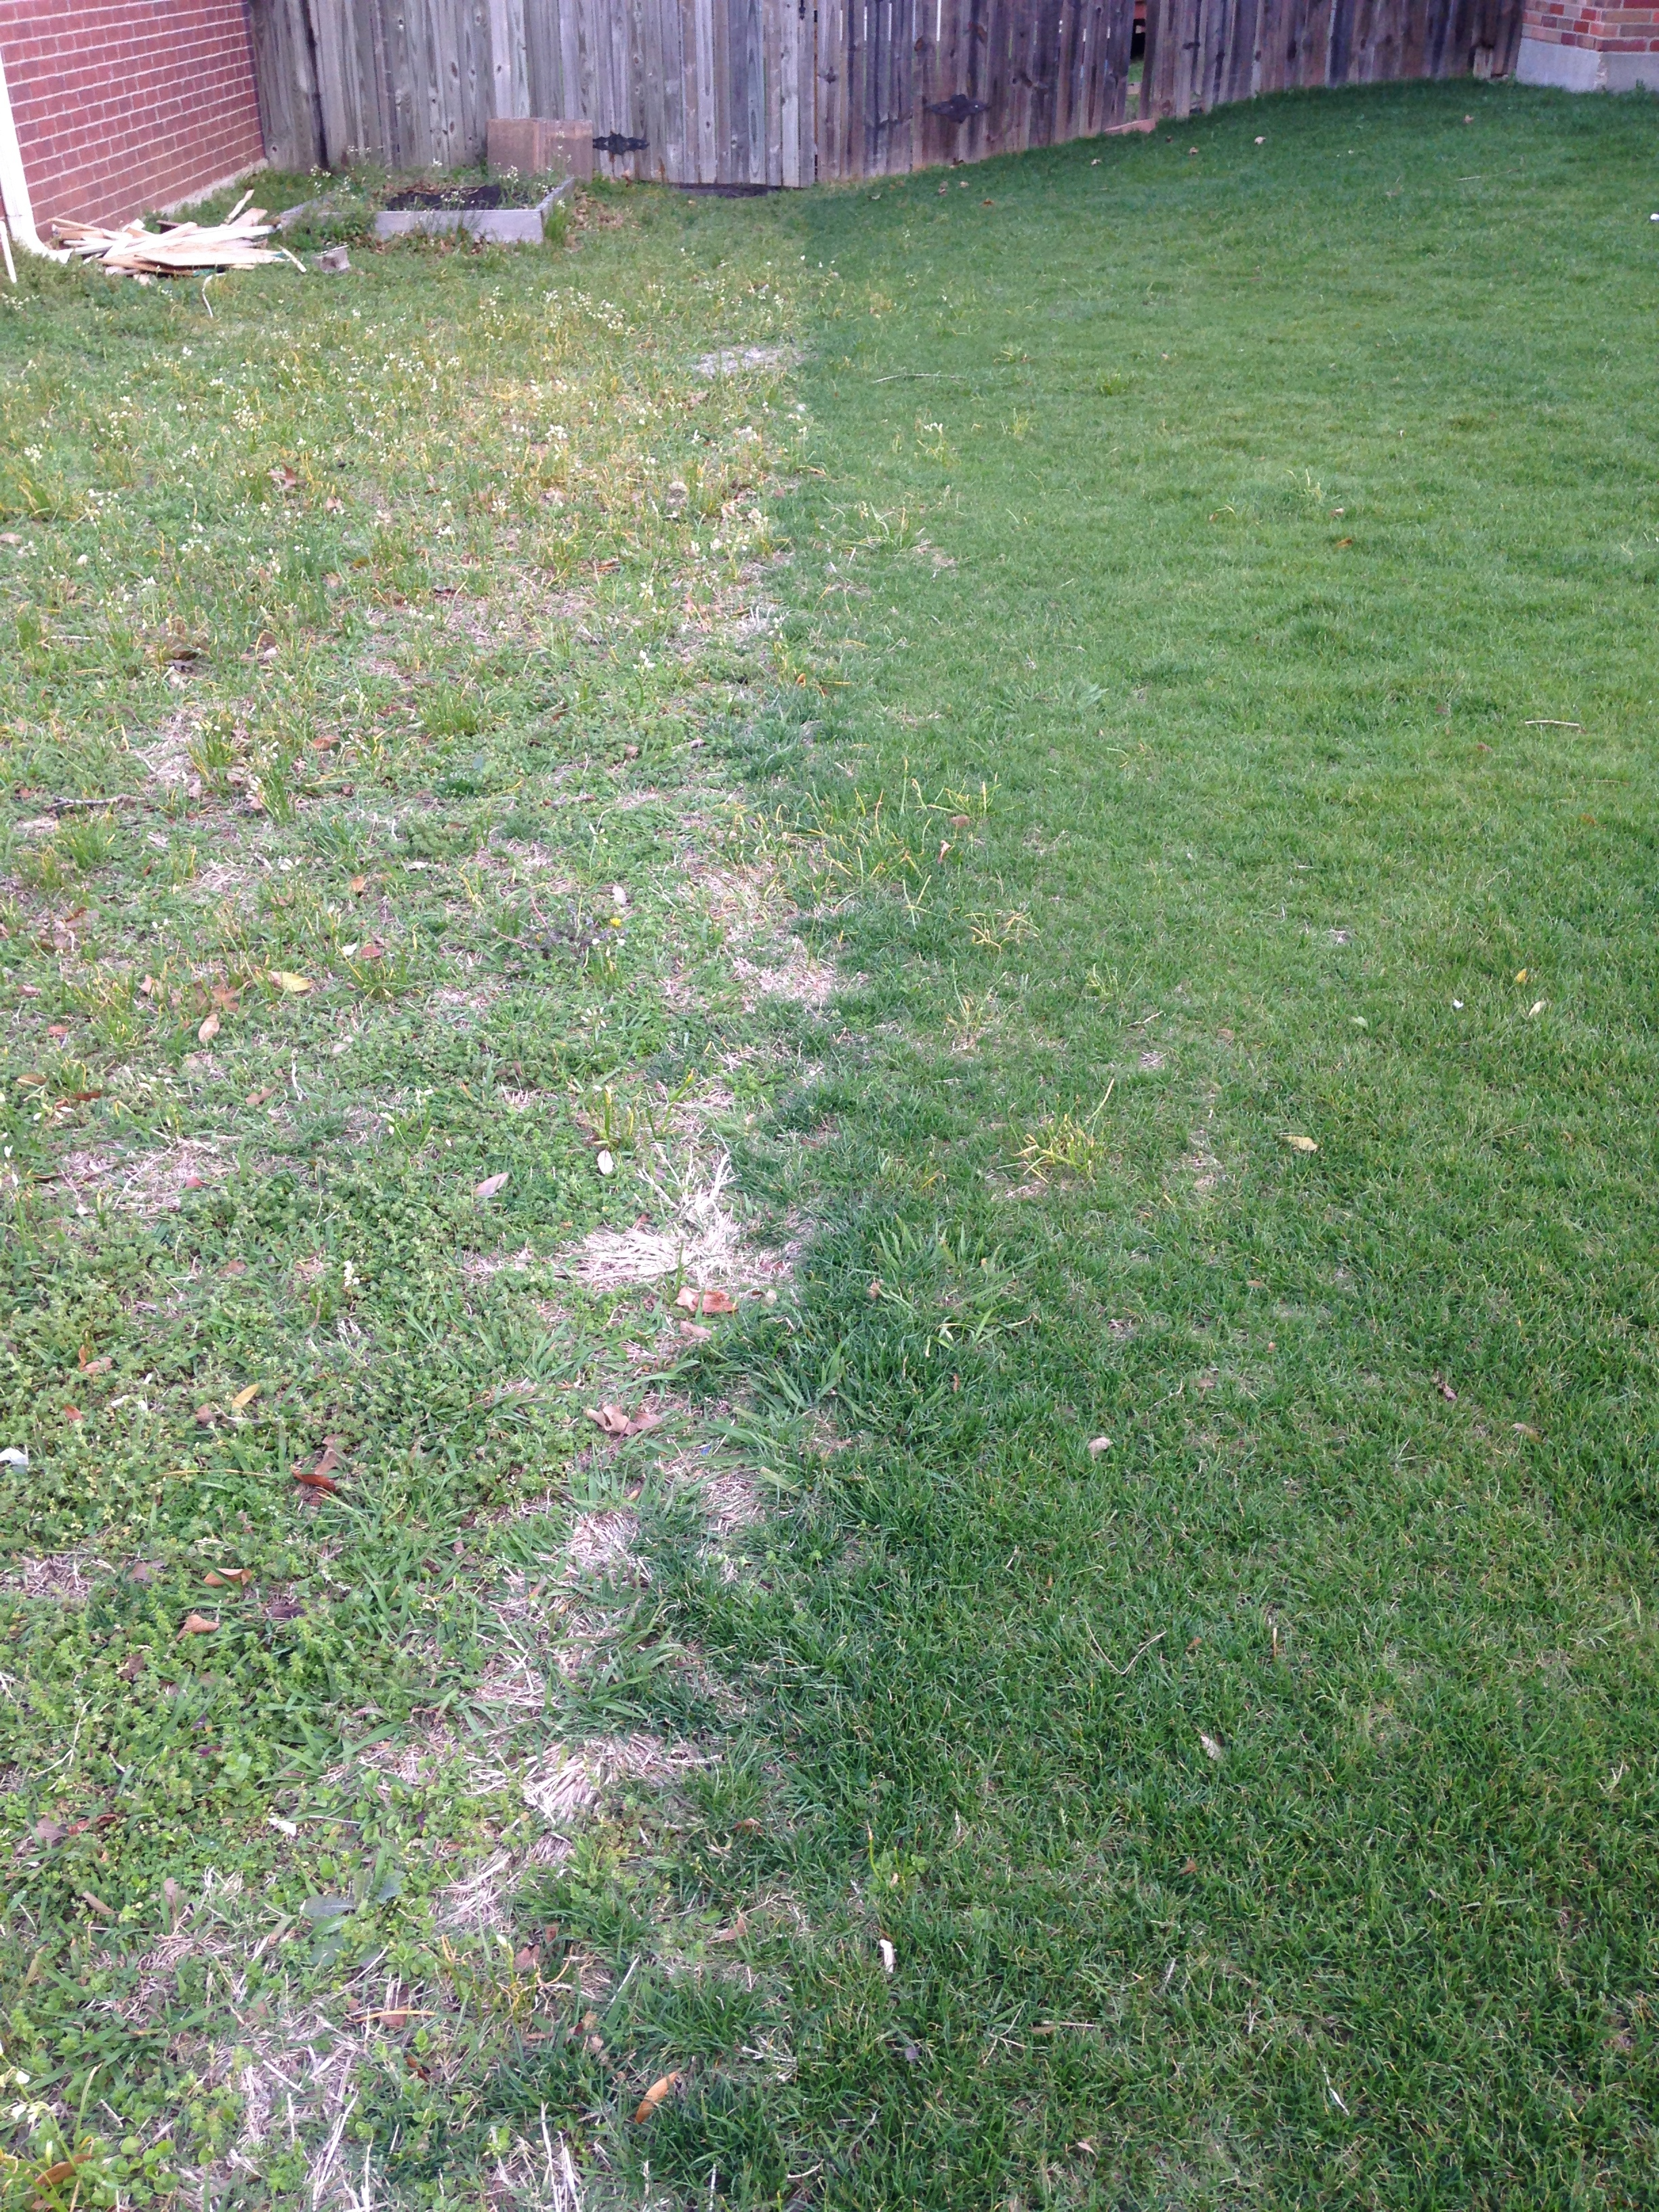 The grass can be greener on your side with the help of Fertilogic!!